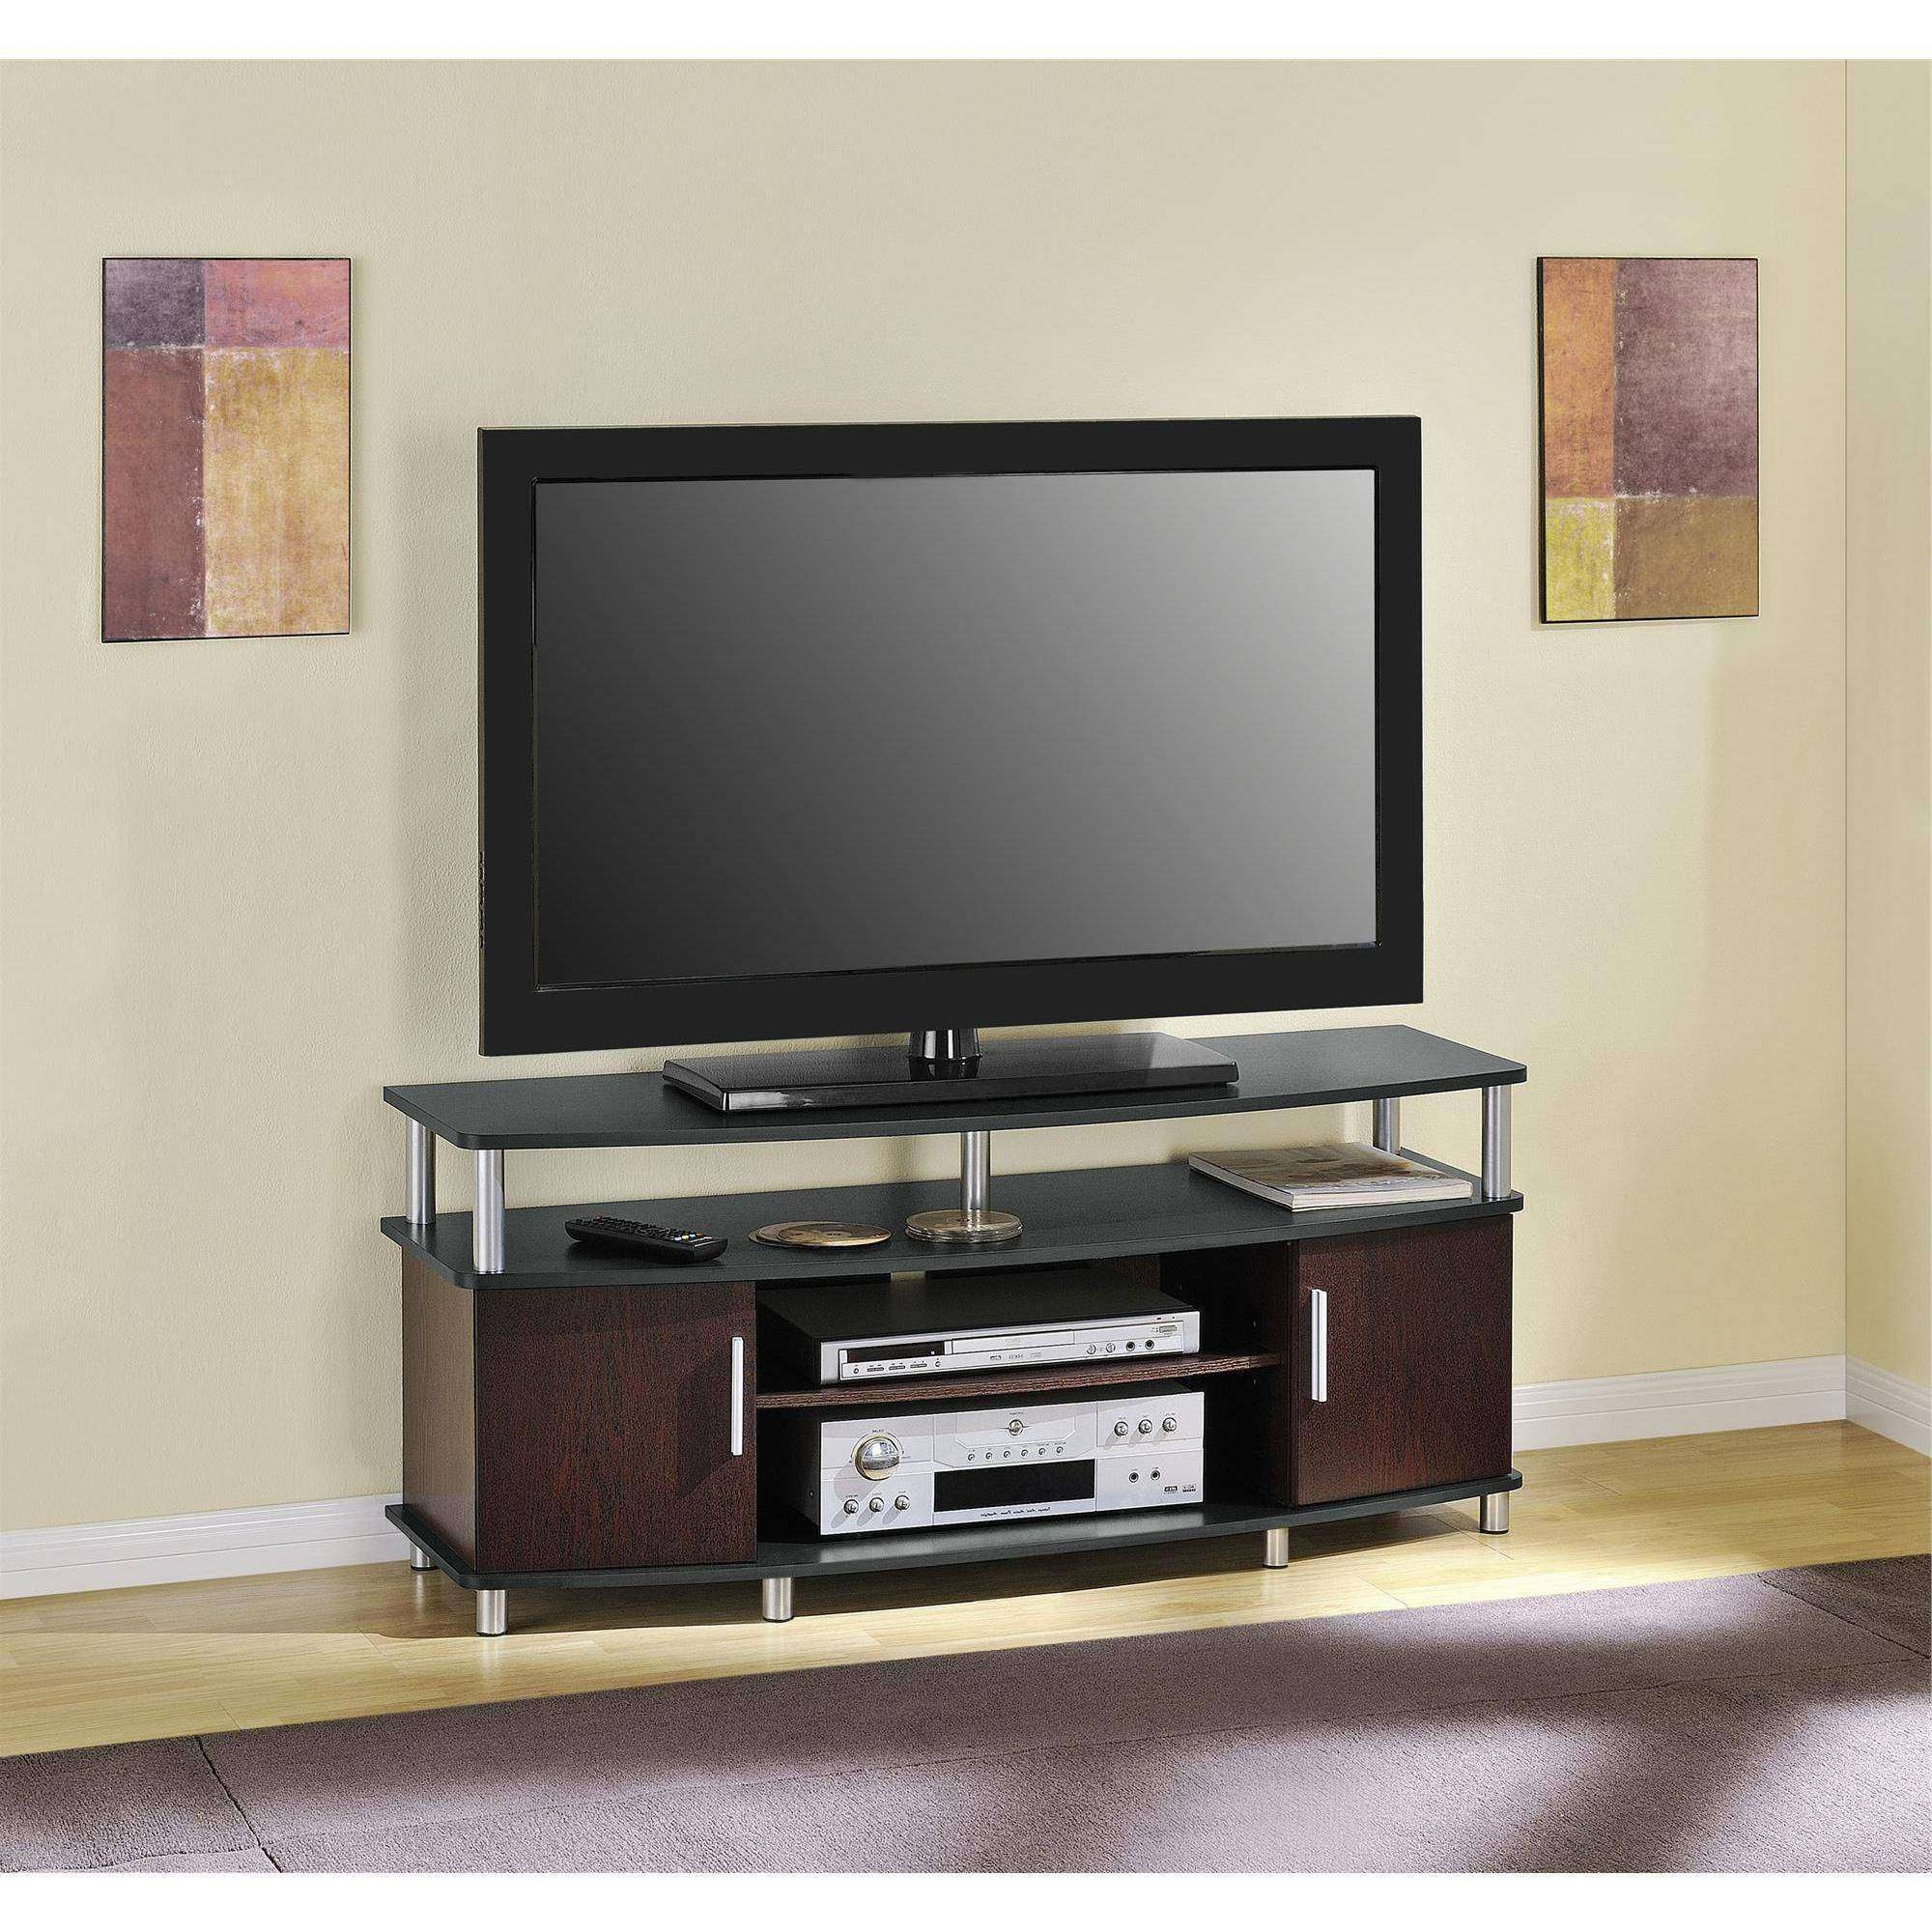 Perfect Corner Tv Stands For 50 Inch Tv 19 For Simple Home Regarding Corner Tv Stands For 50 Inch Tv (View 5 of 20)